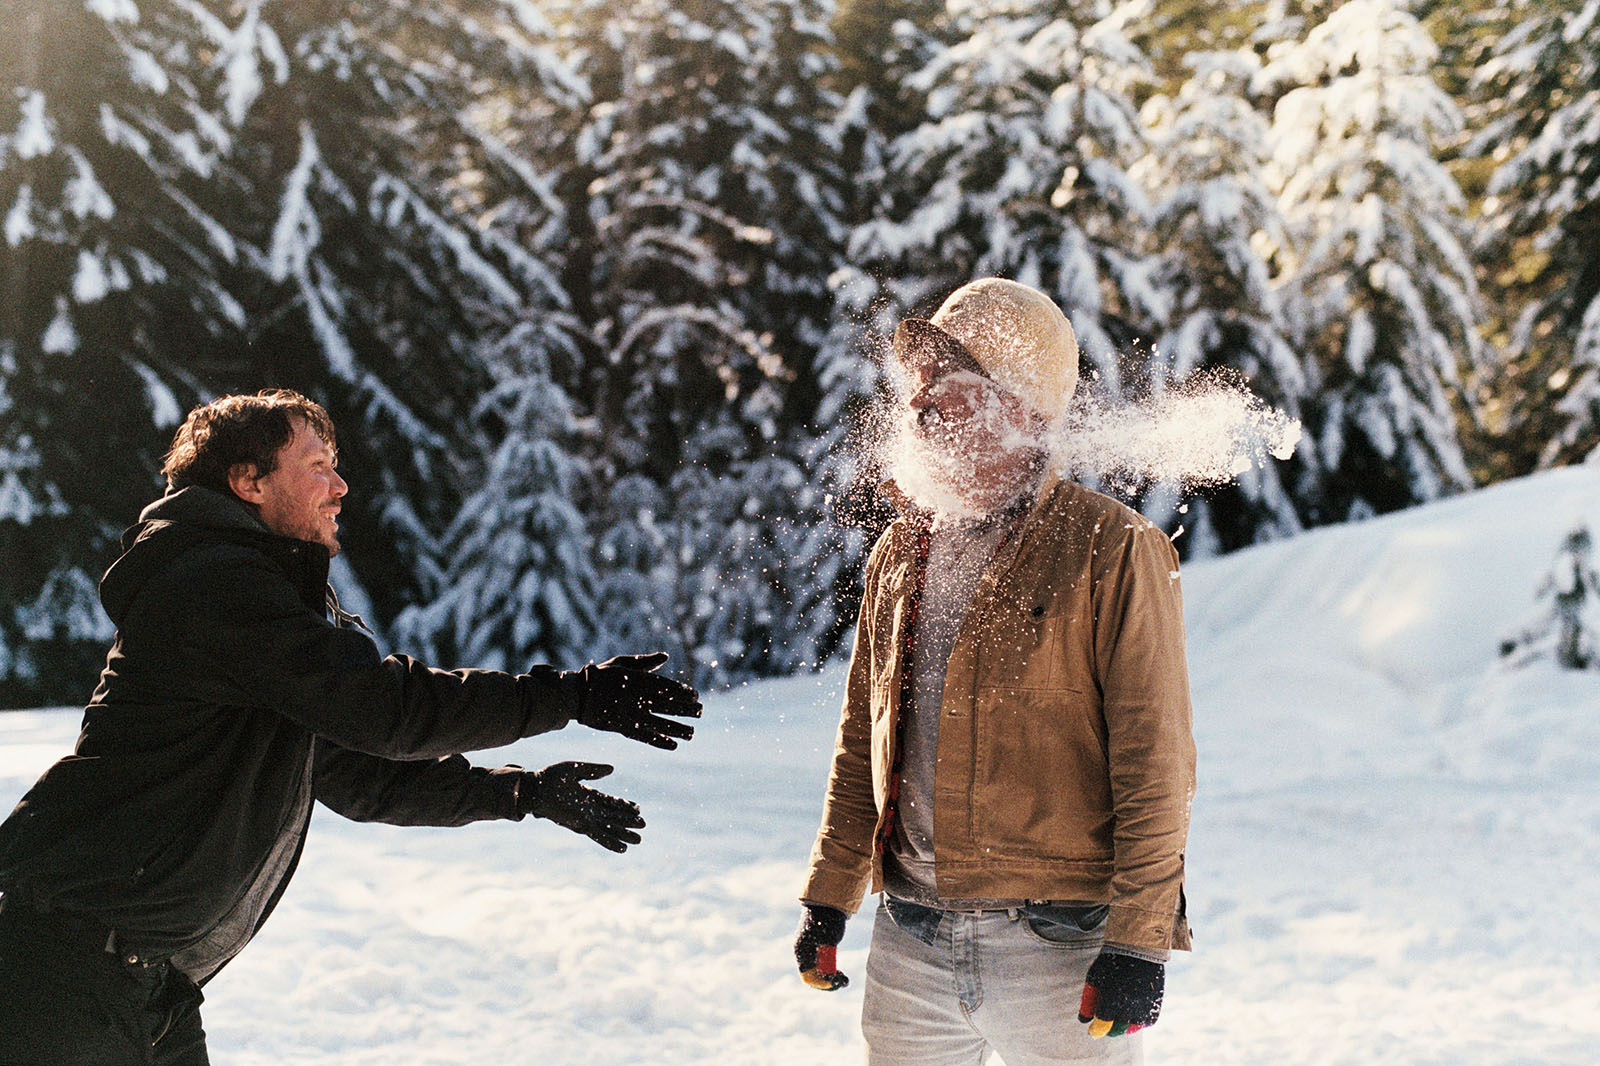 Amos throwing snow on Miles in Trout Lake, WA | Contax Aria